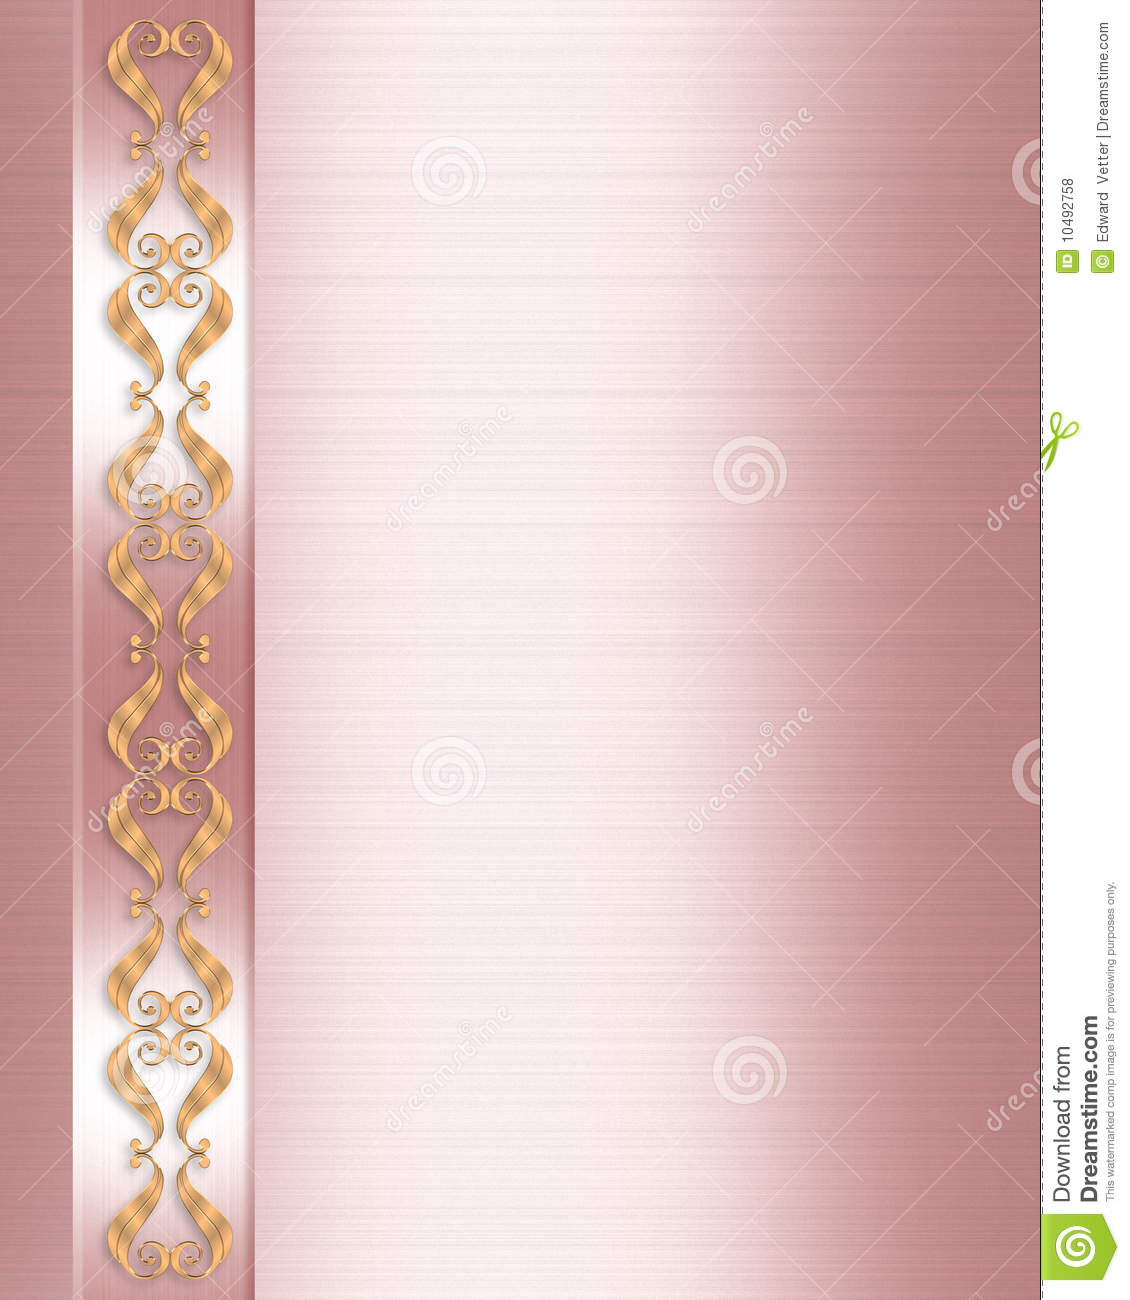 Elegant formal invitation border pink satin stock illustration download comp stopboris Gallery